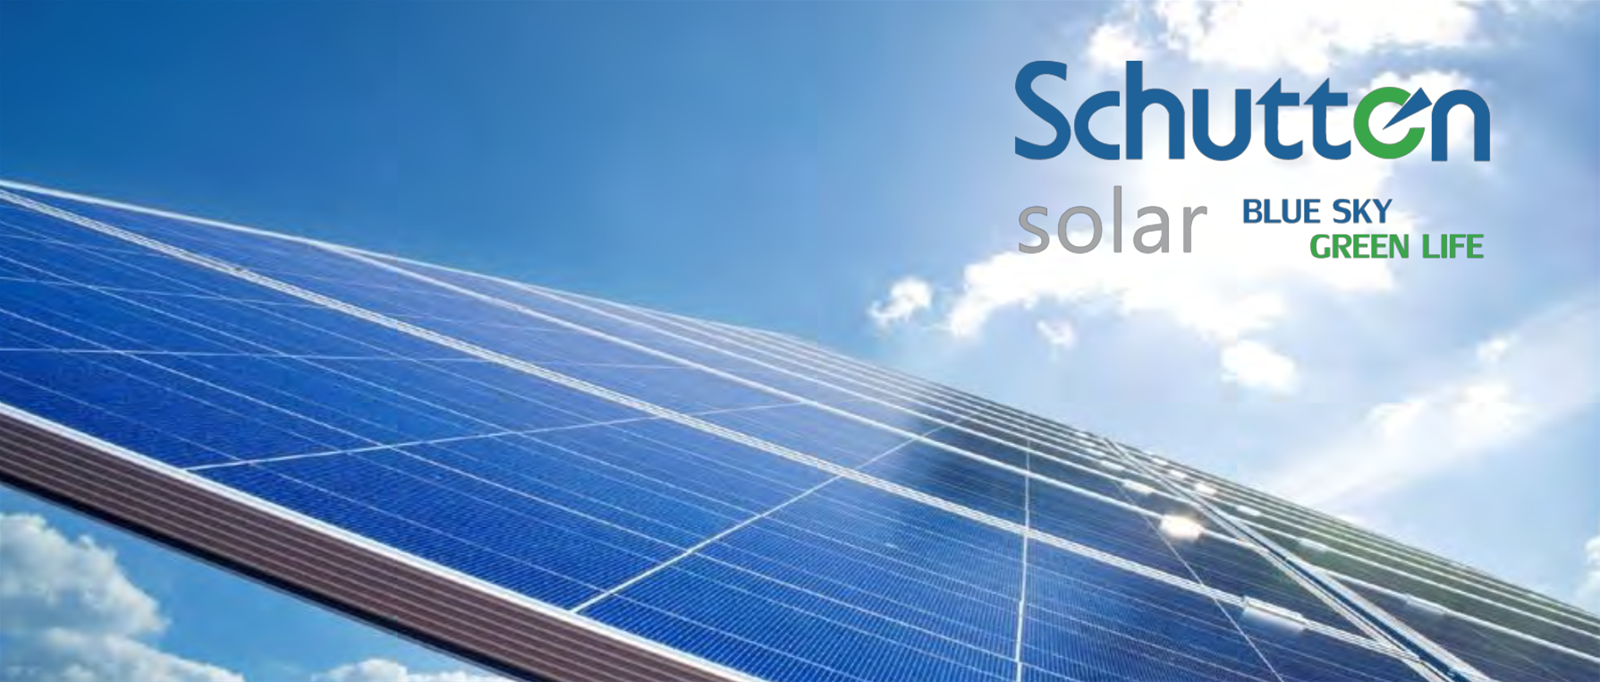 Schutten Solar Co., Ltd.